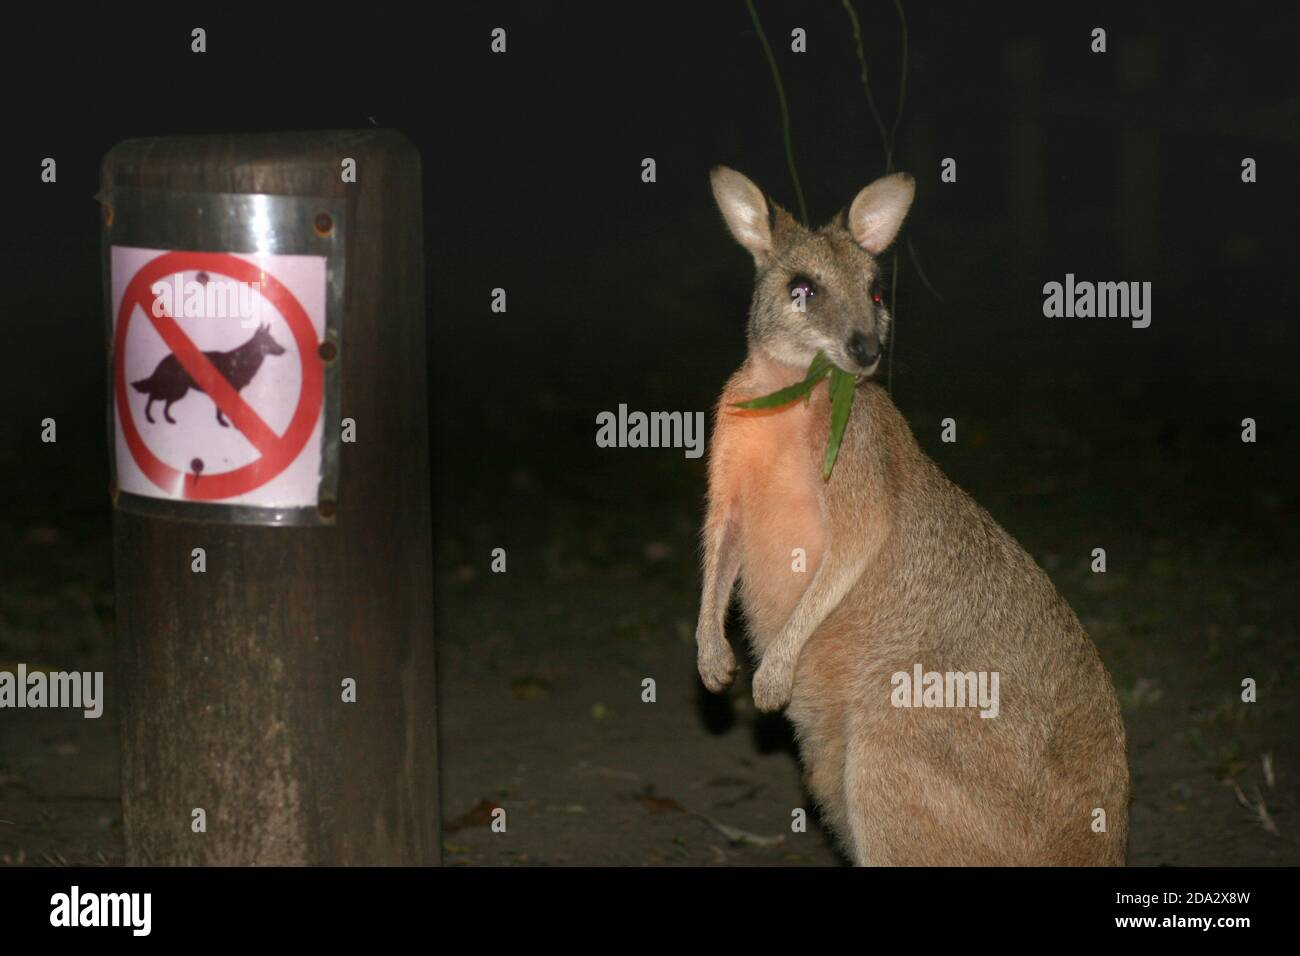 Red-necked wallaby, Bennett´s Wallaby (Macropus rufogriseus, Wallabia rufogrisea), feeding next to a prohibition sign for dogs, Australia, Queensland Stock Photo